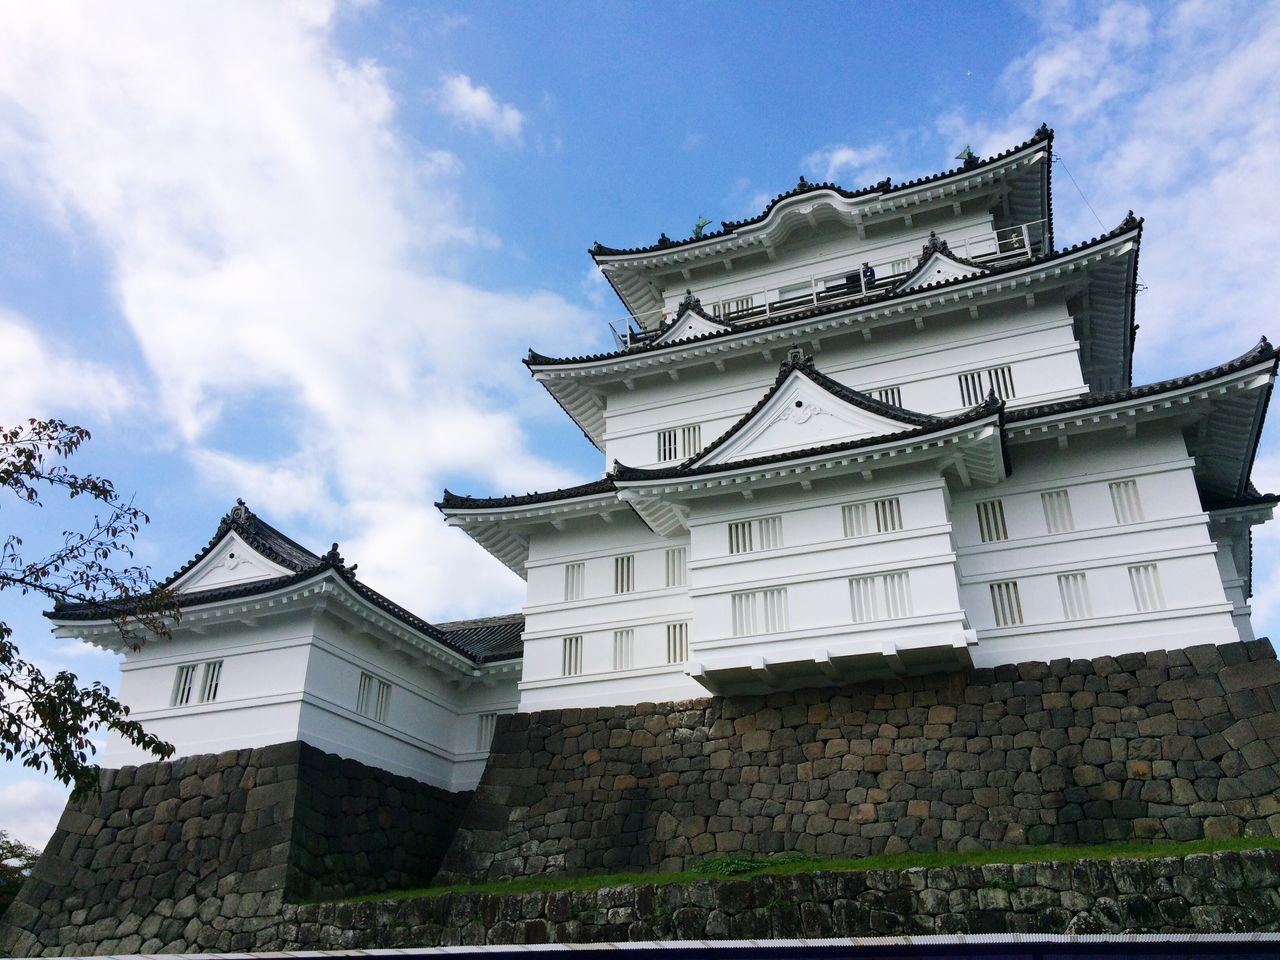 Architecture Building Exterior Built Structure Sky Low Angle View Day City No People Outdoors Castle Odawara Odawara Castle / Japan Japan Tradition Culture The Architect - 2017 EyeEm Awards